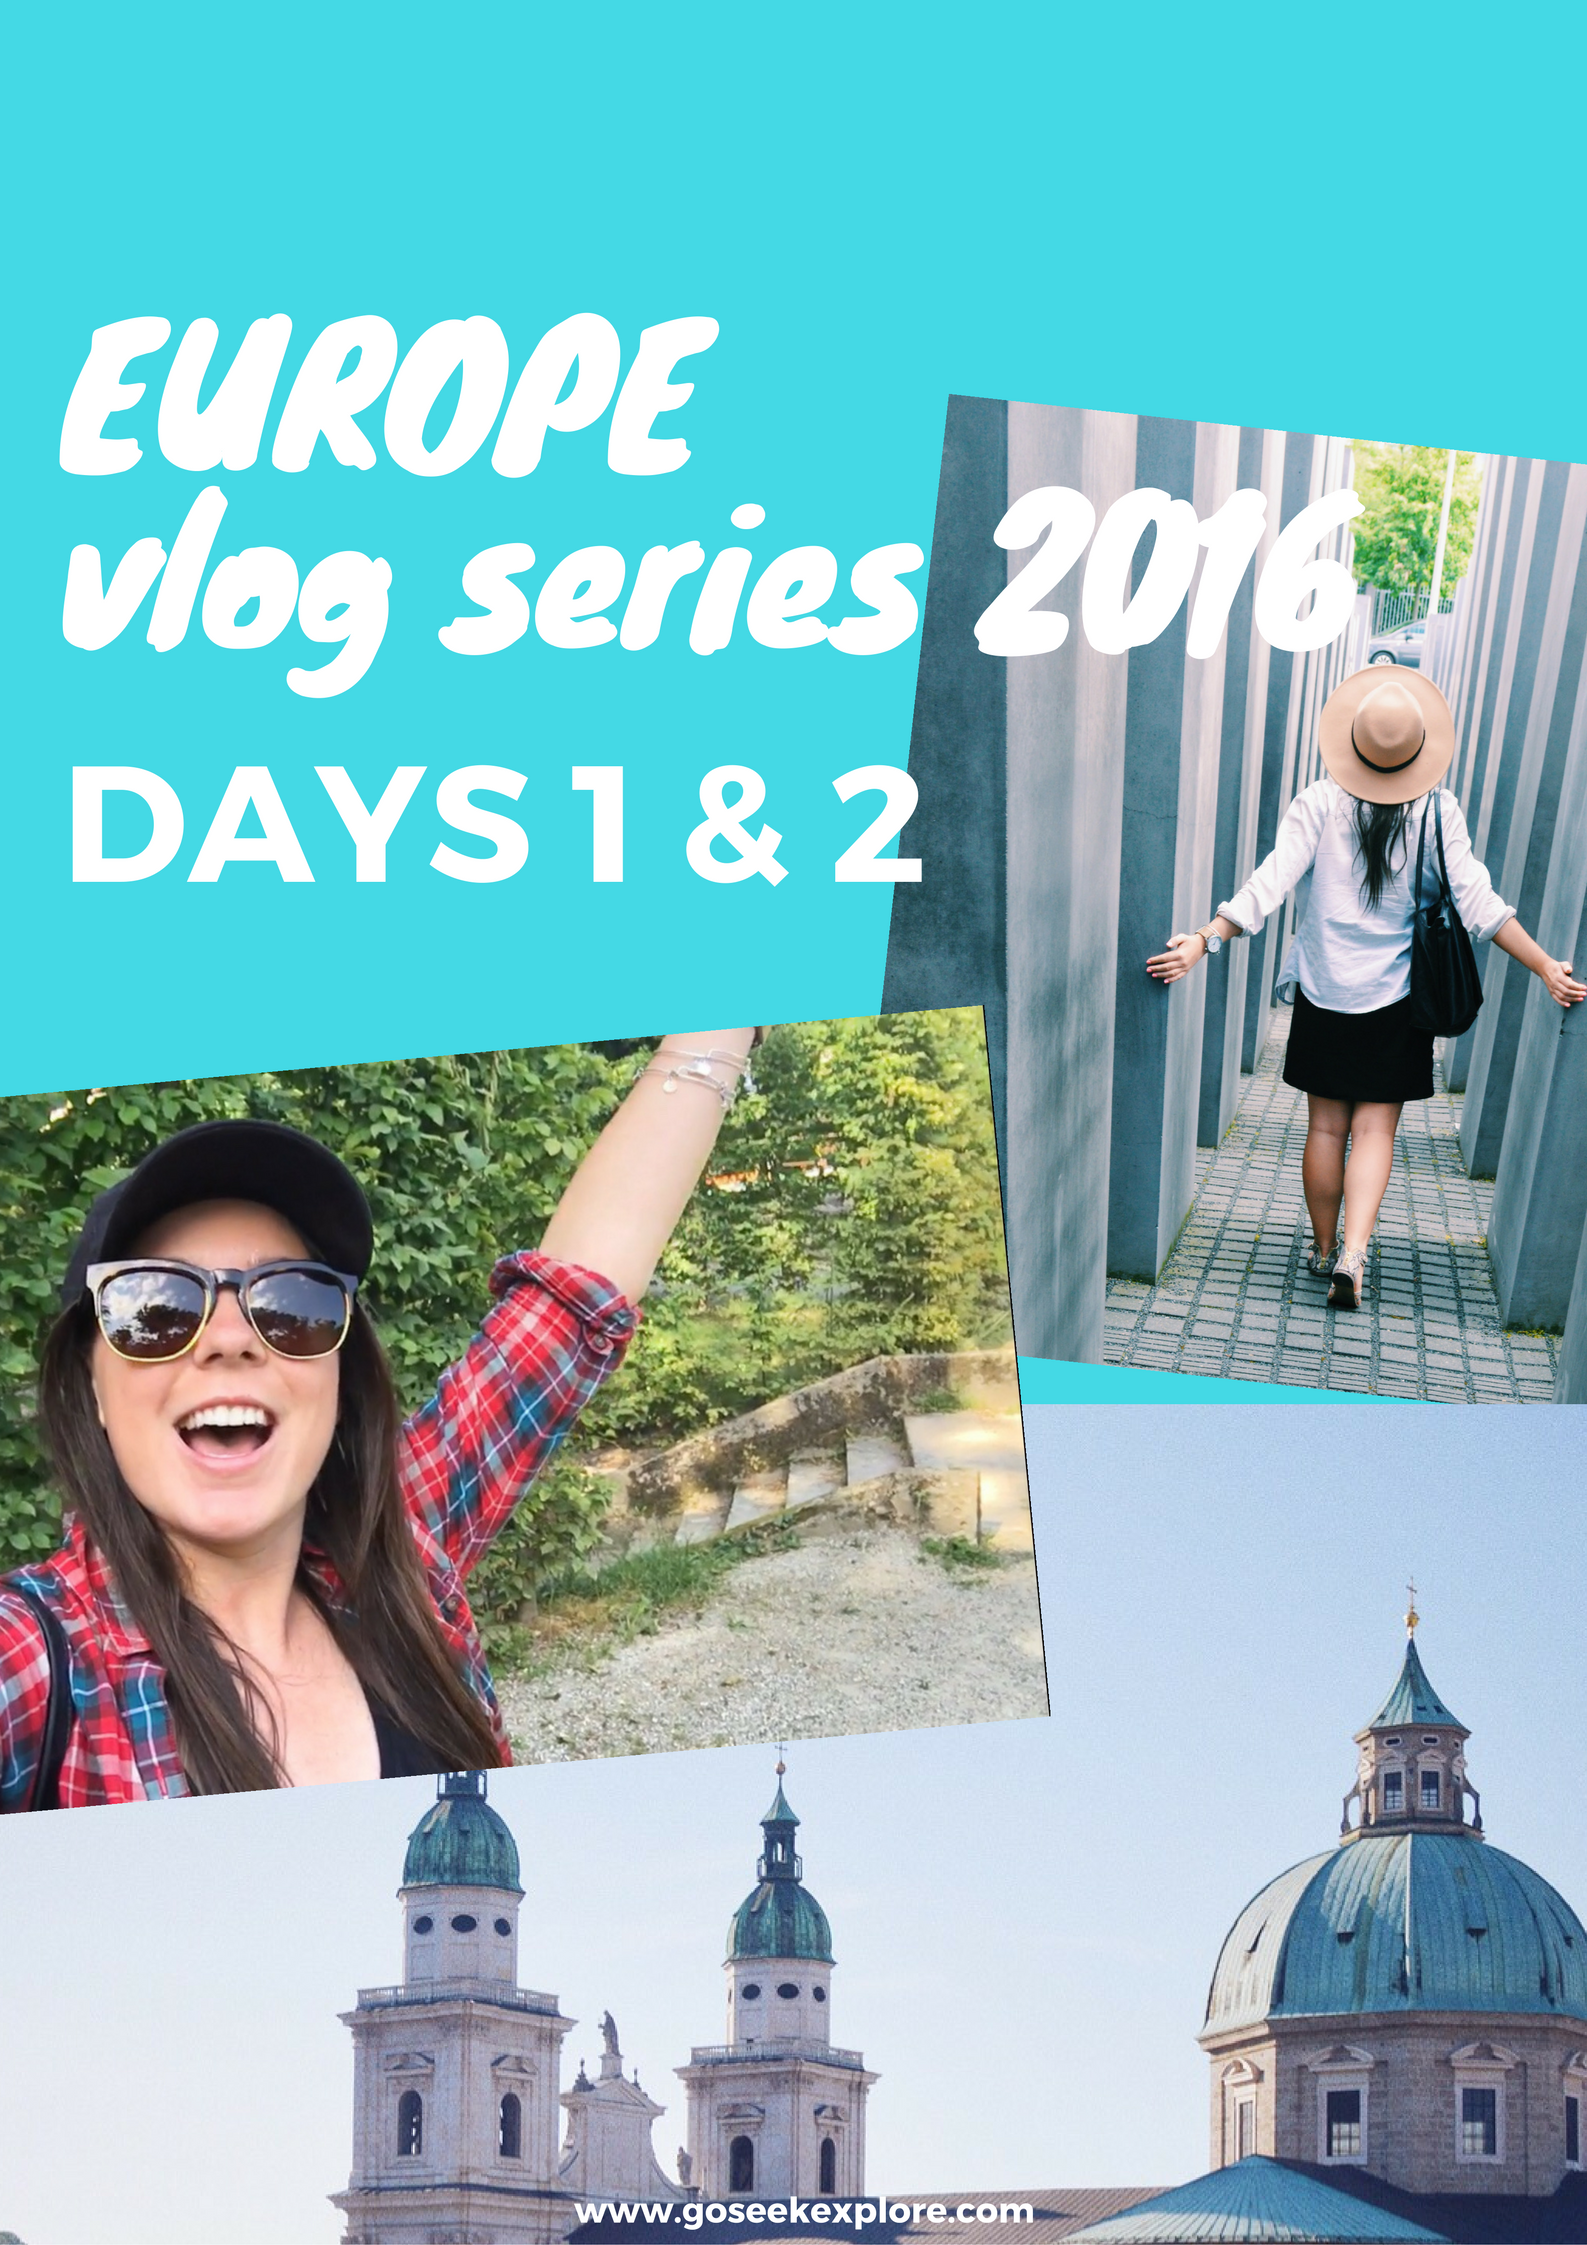 Surviving delayed flights and lost luggage; a glimpse of Vienna, Austria; and a day trip to beautiful Bratislava, Slovakia! Check out the video to see it all!